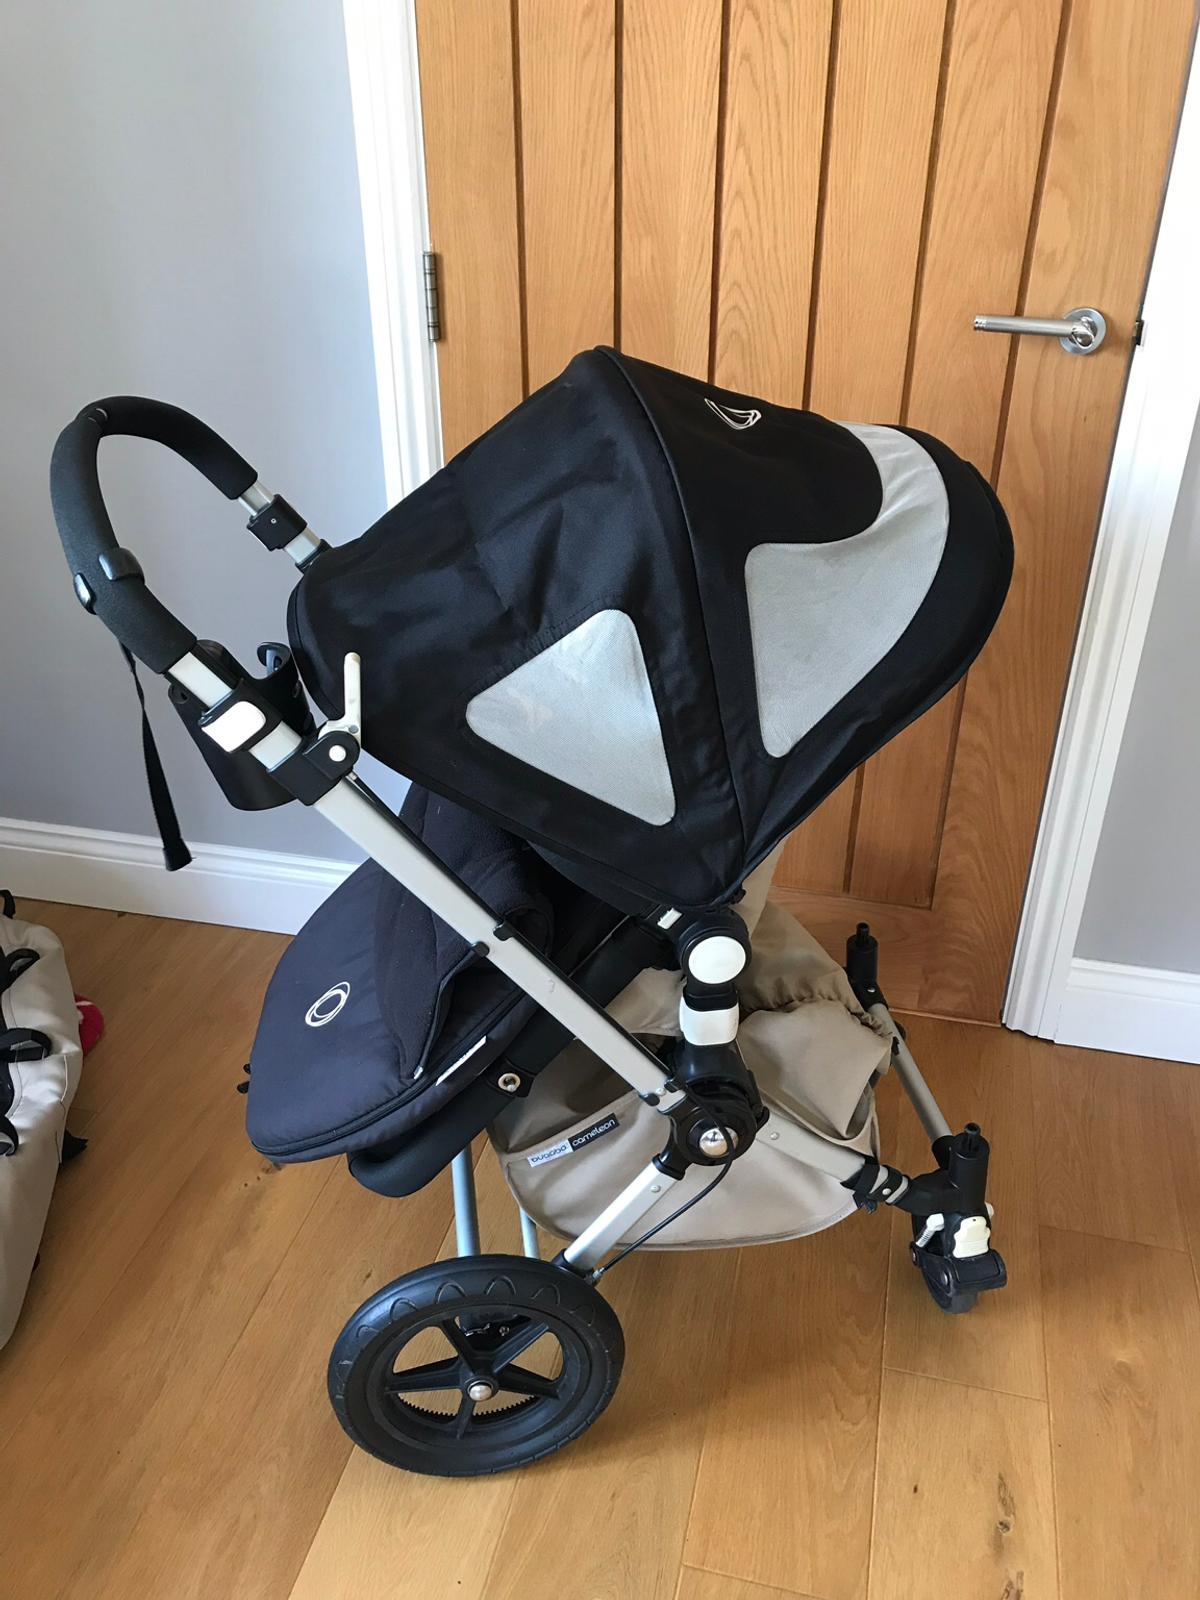 Maxi Cosi Car Seat Base John Lewis Bugaboo Cameleon And Car Seat Massive Bundle In Upper